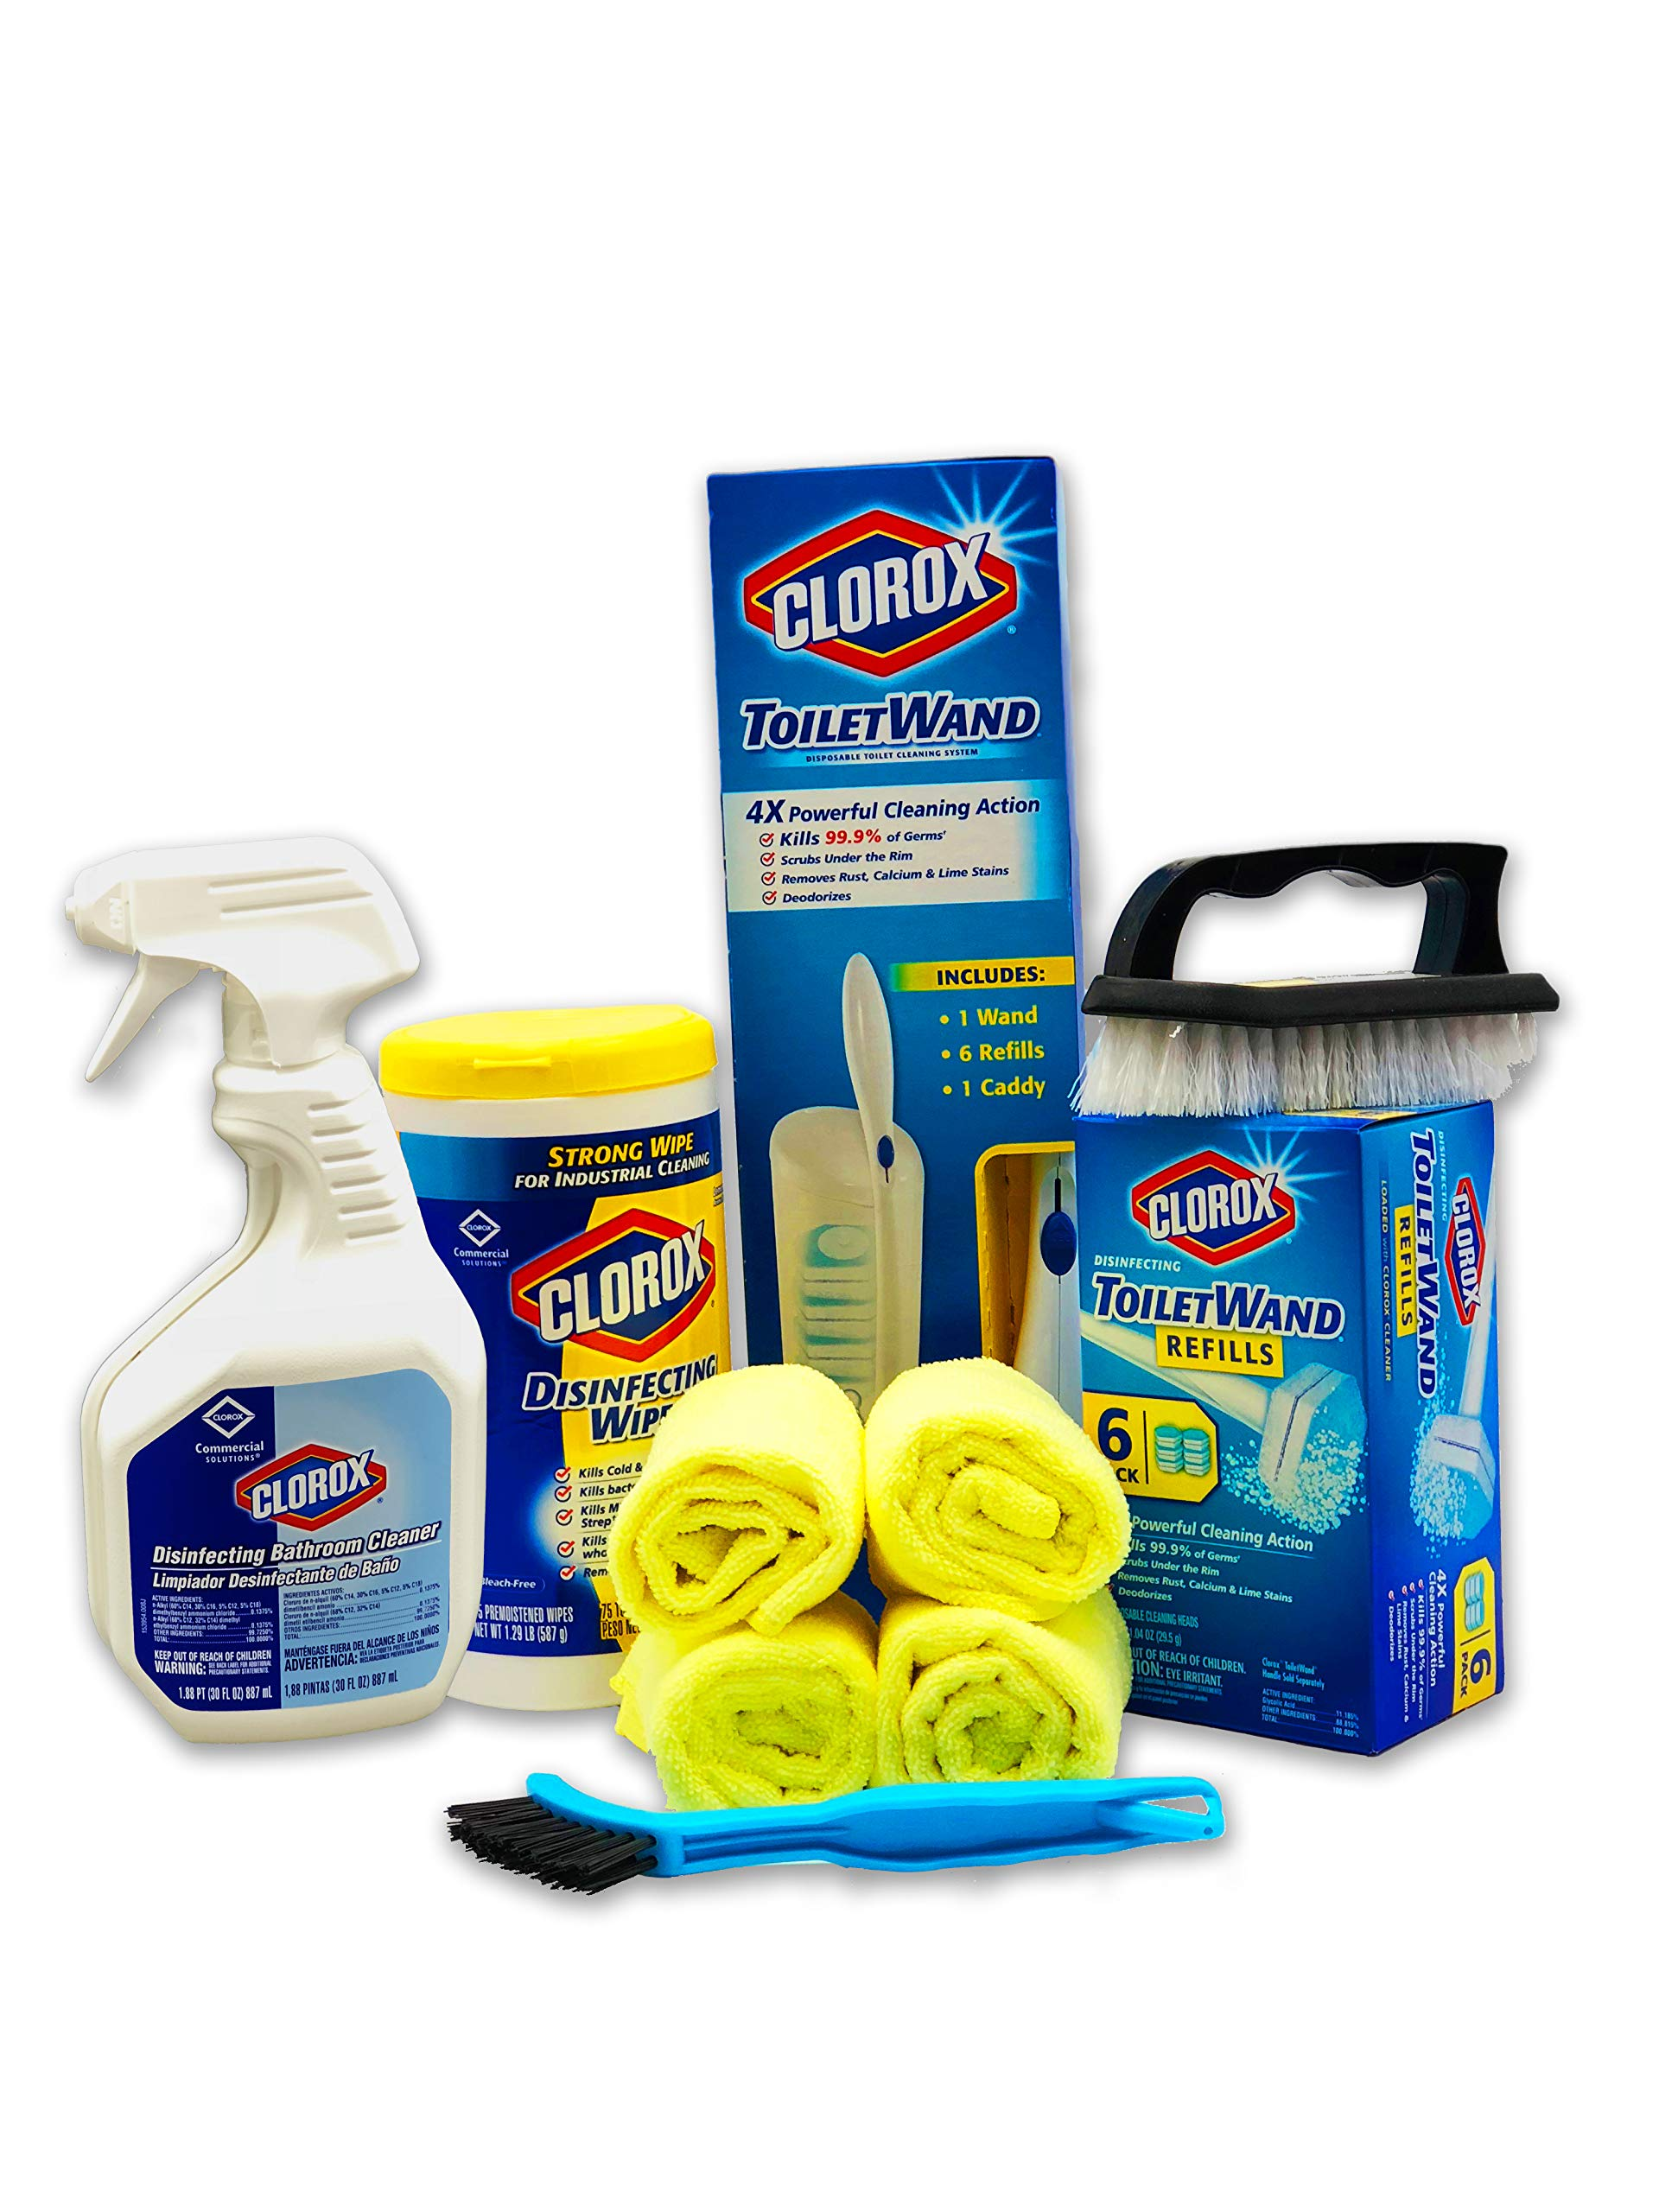 Clorox Products Bathroom Cleaning Kit 7 Piece Set by Clorox (Image #1)